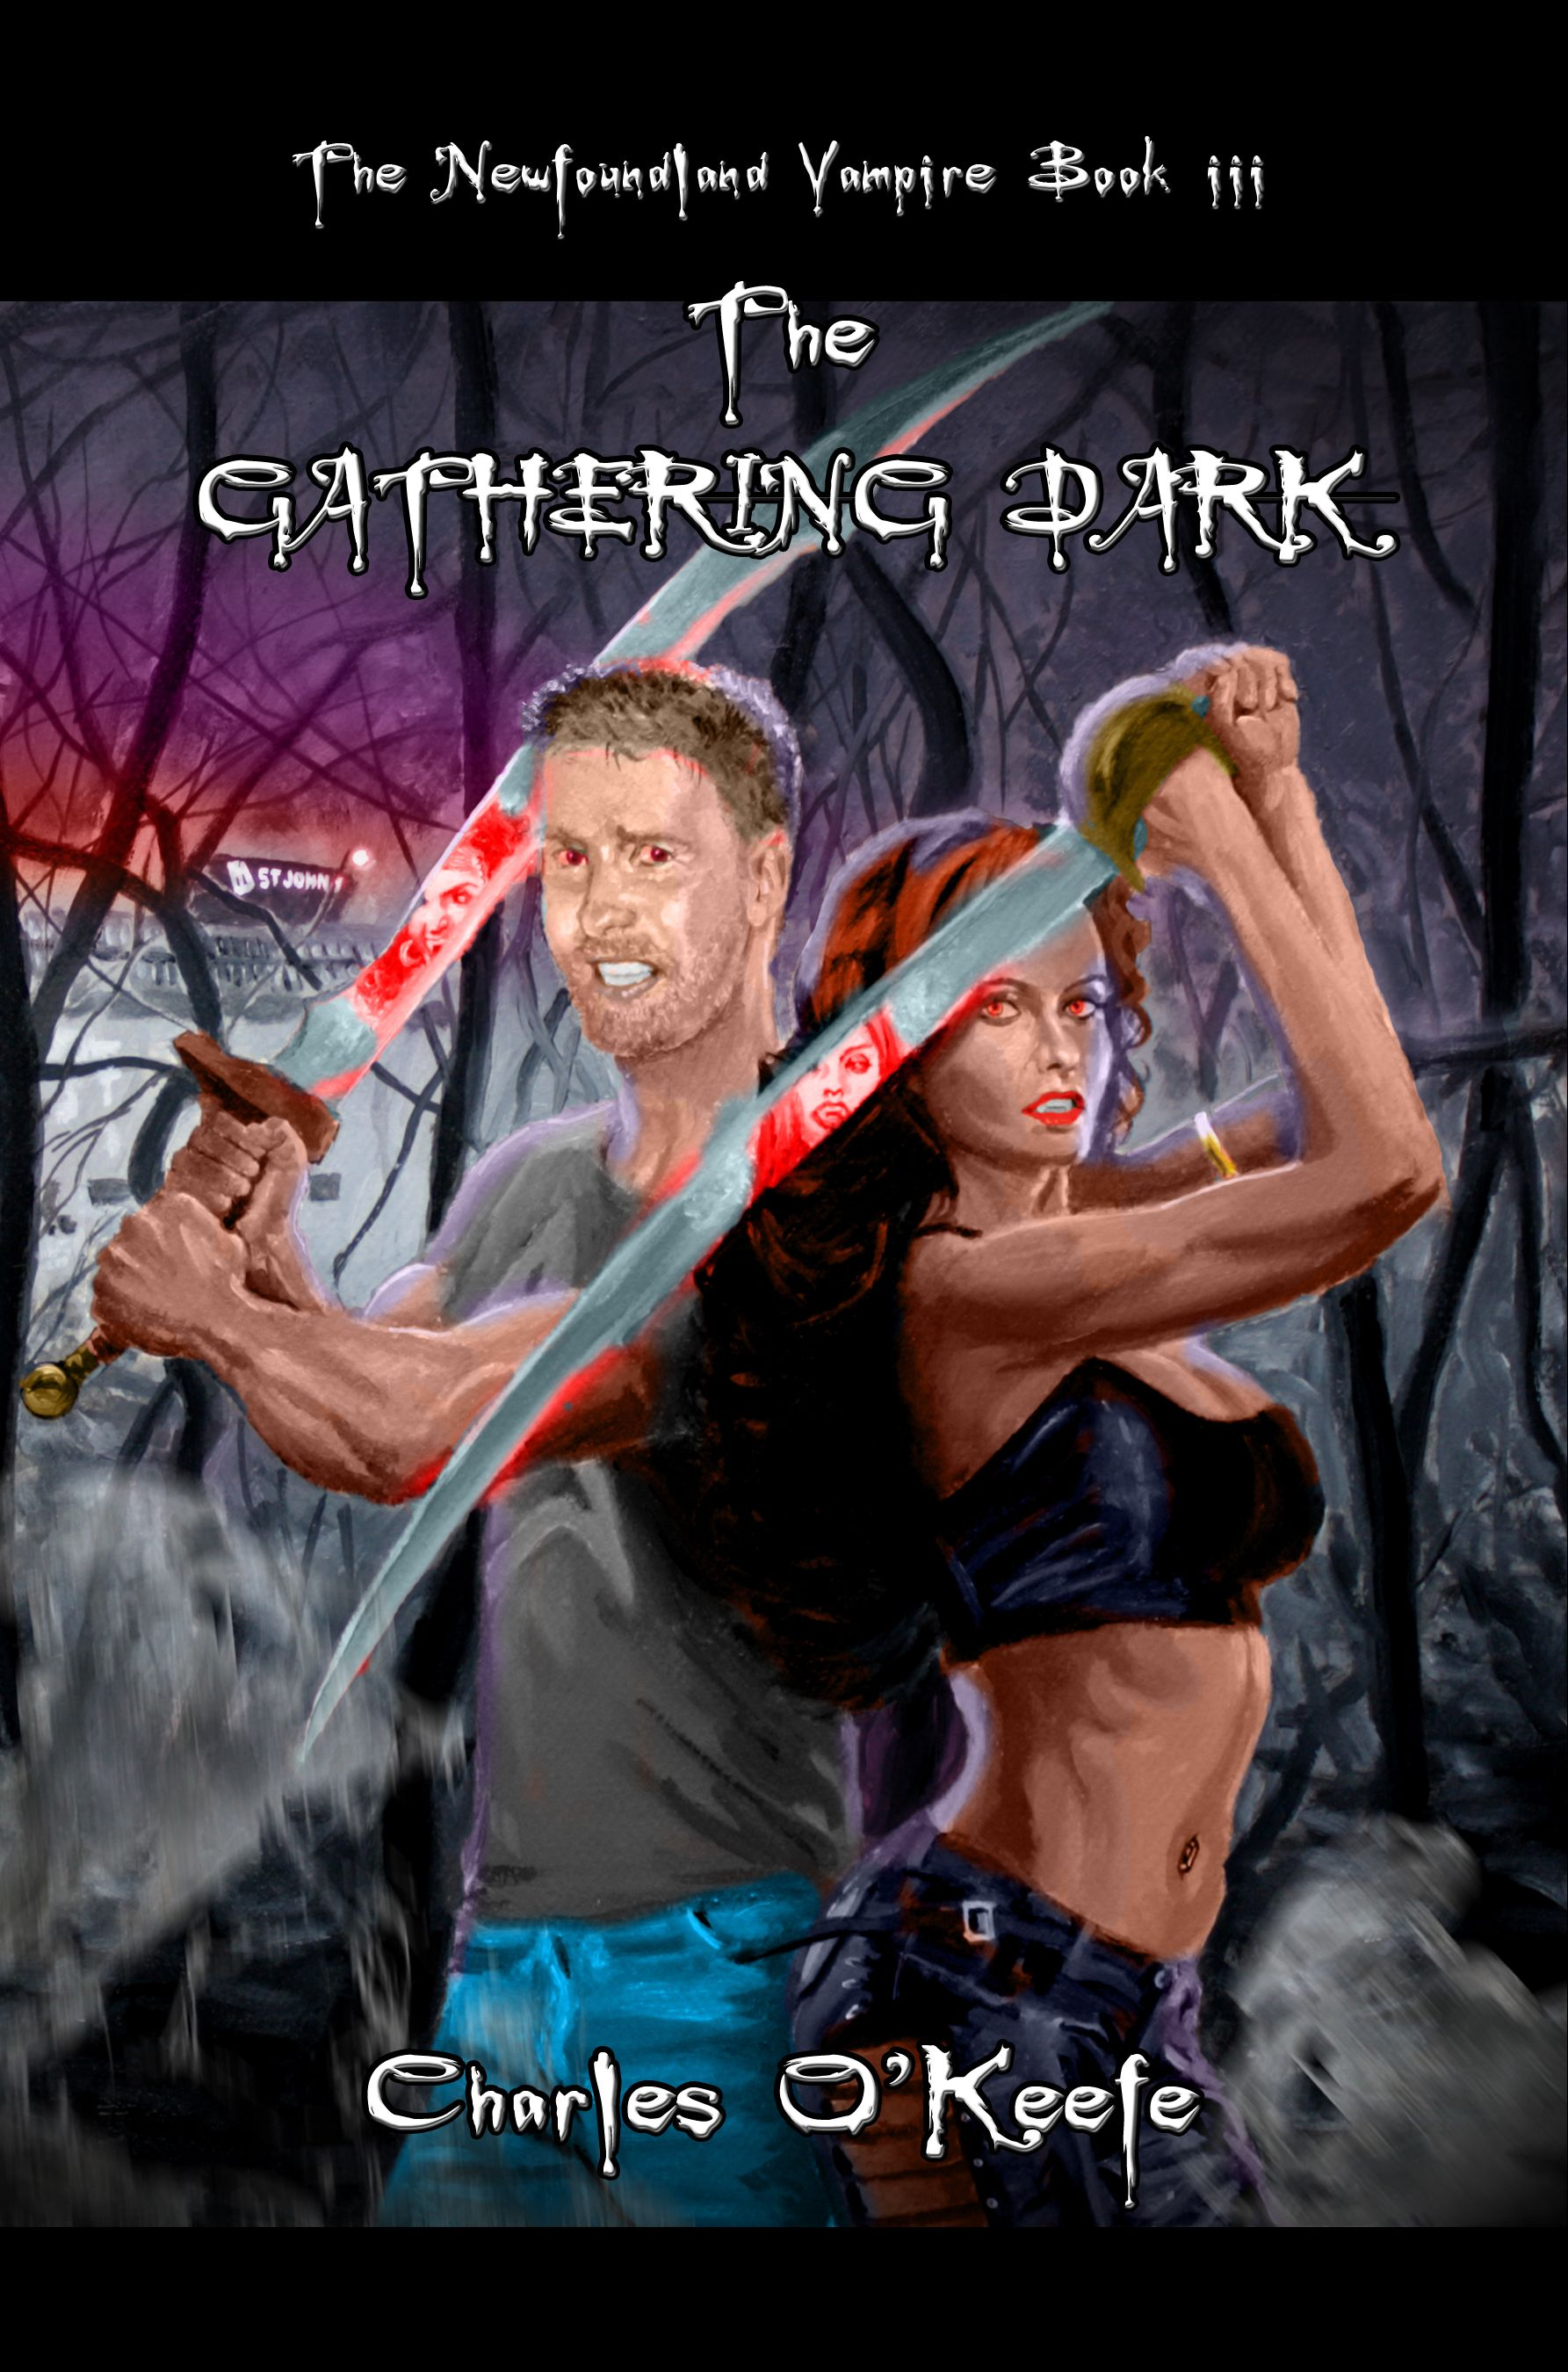 THE NEWFOUNDLAND VAMPIRE – BOOK III: THE GATHERING DARK